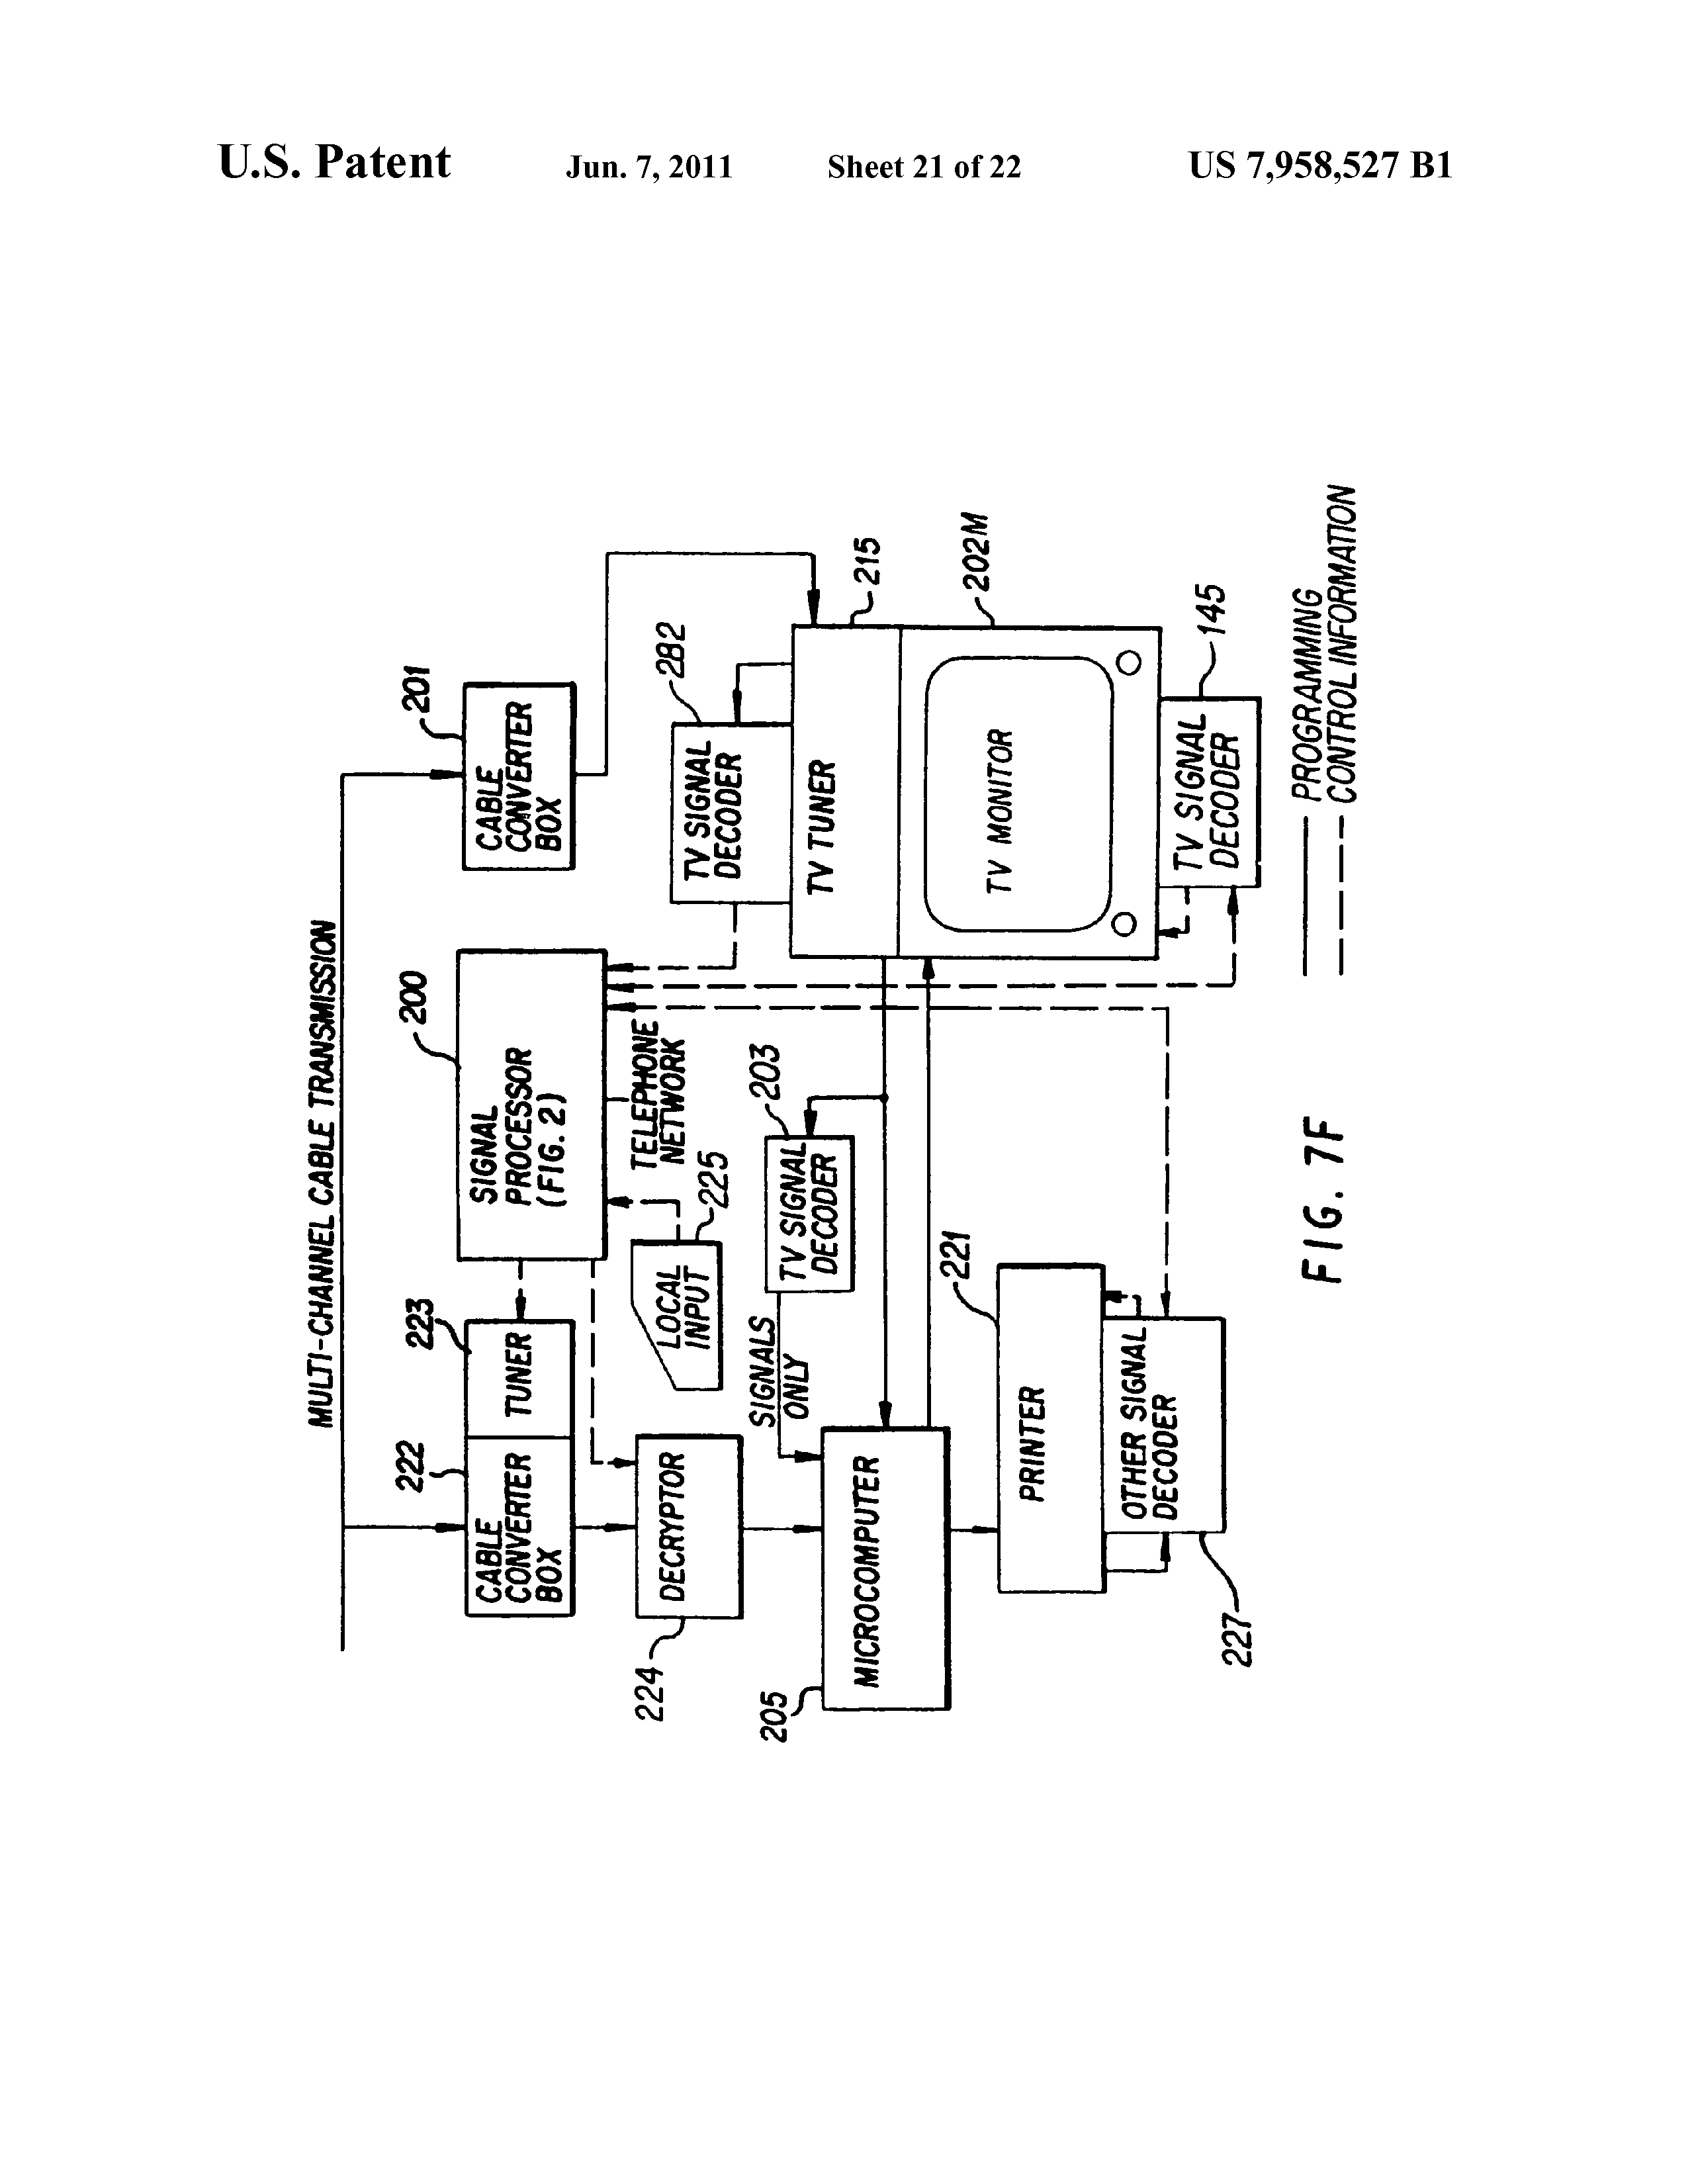 Us7958527b1 Signal Processing Apparatus And Methods Google Patents Polarity Using Reed Switches Relays Electronics Forum Circuits